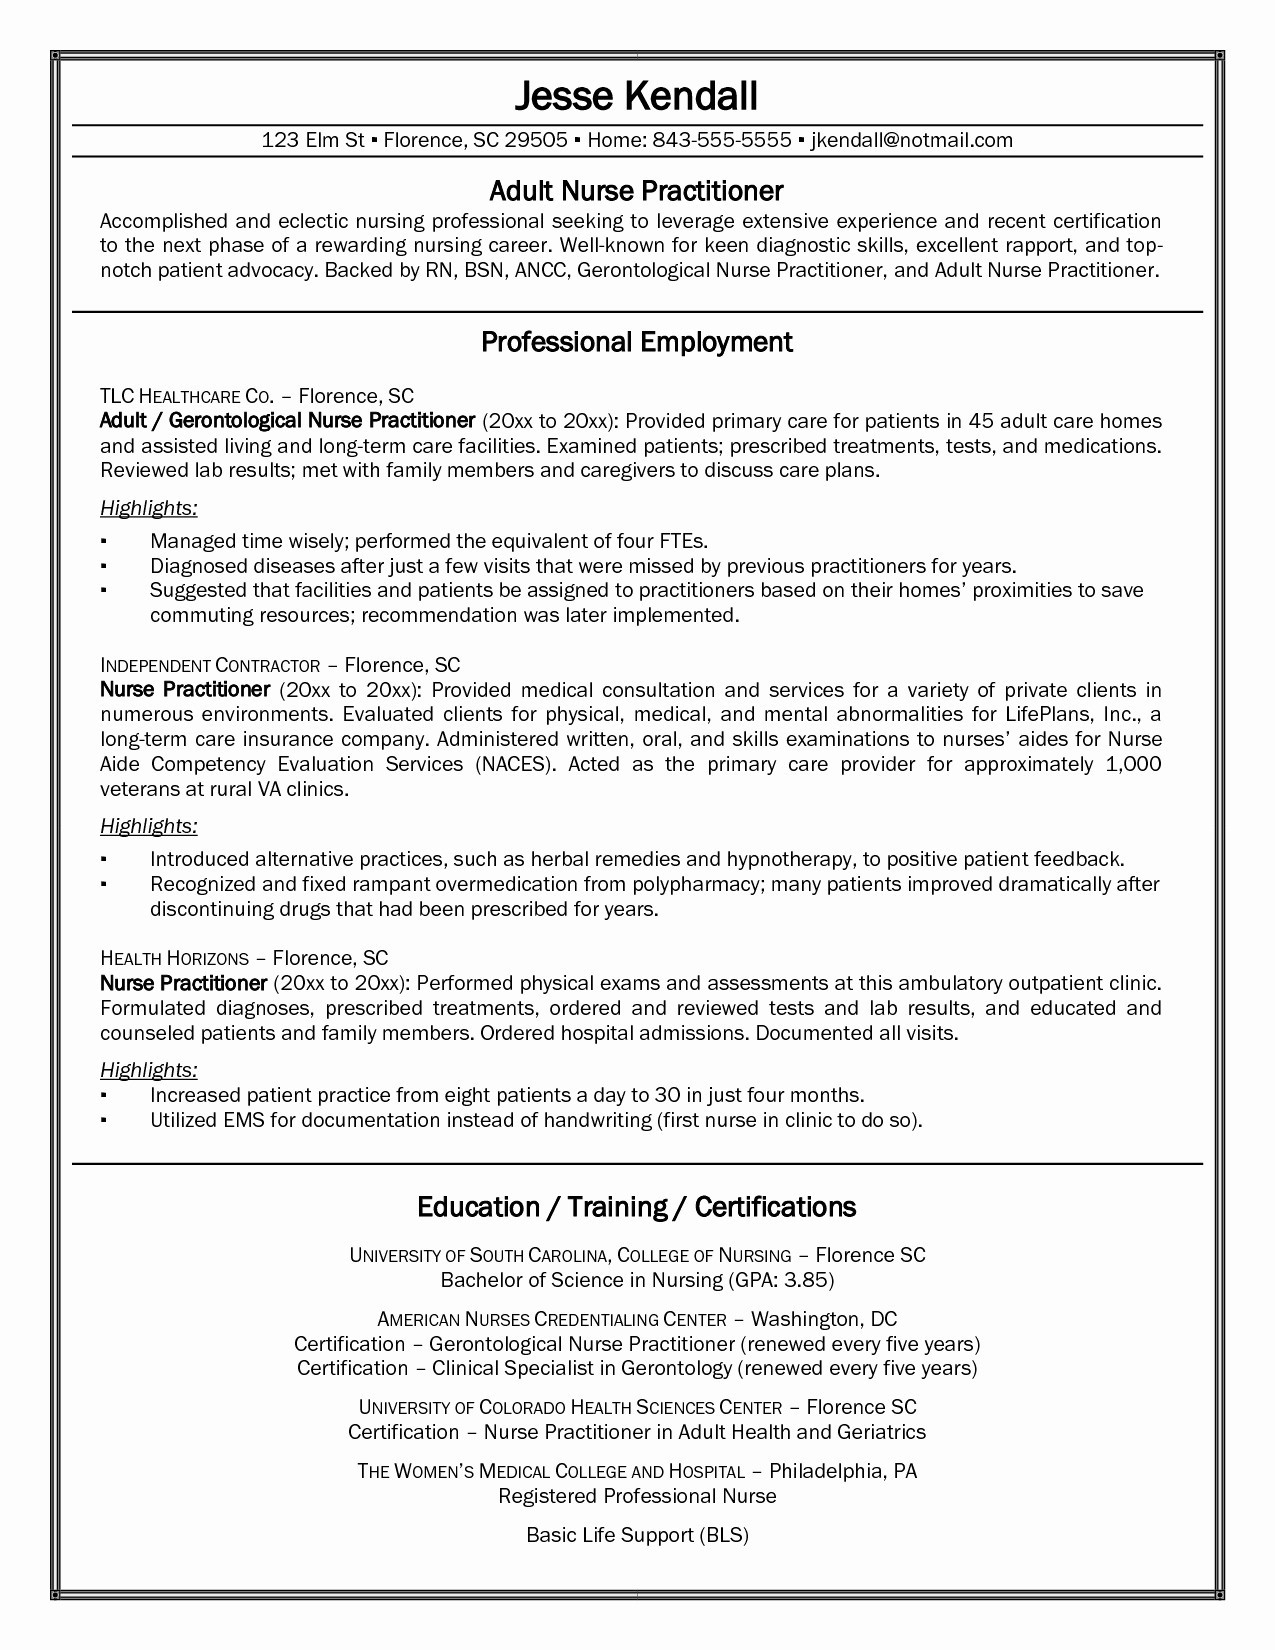 Nurse Practitioner Resume Example - Professional Nursing Resume Elegant Experienced Rn Resume Fresh